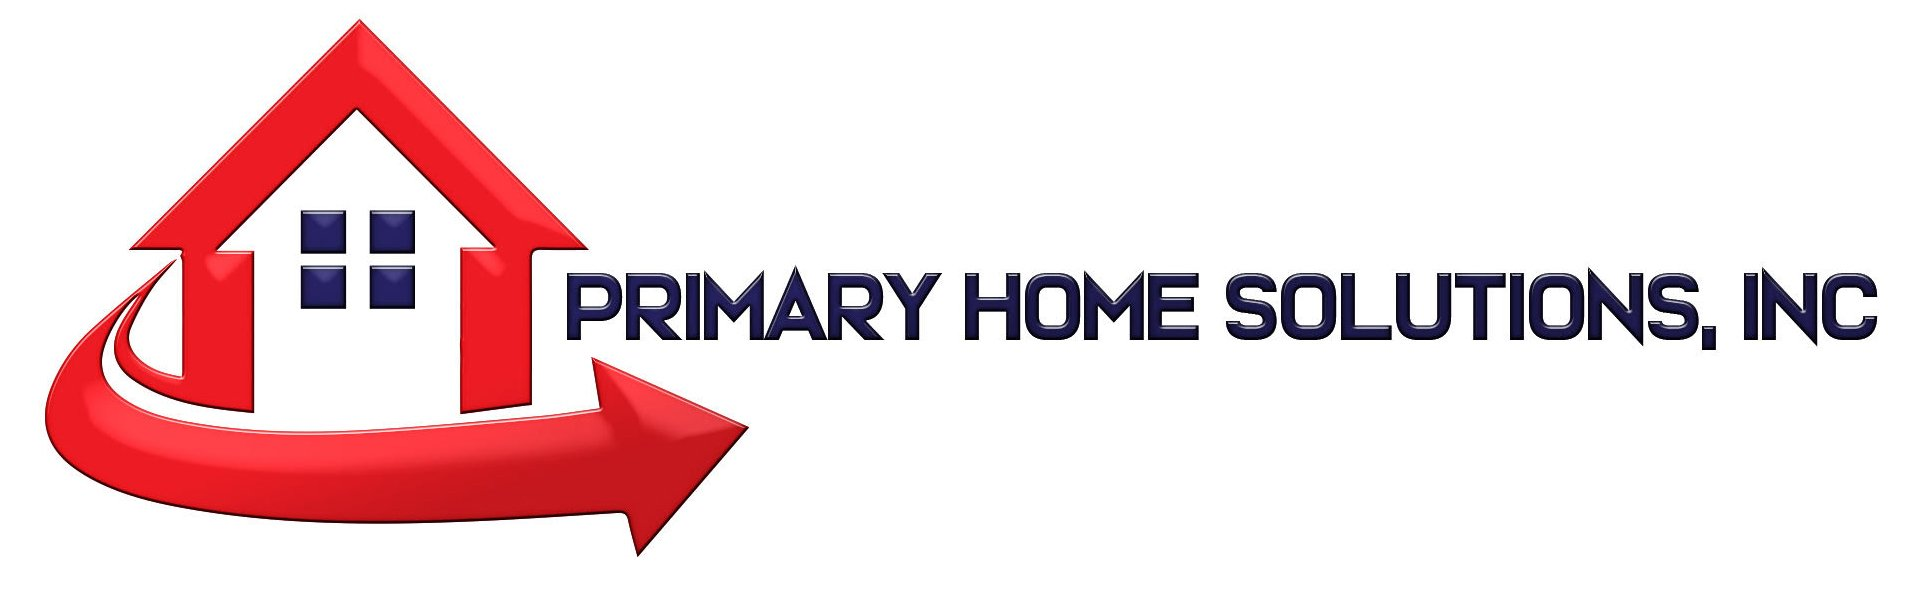 Primary Home Solutions logo